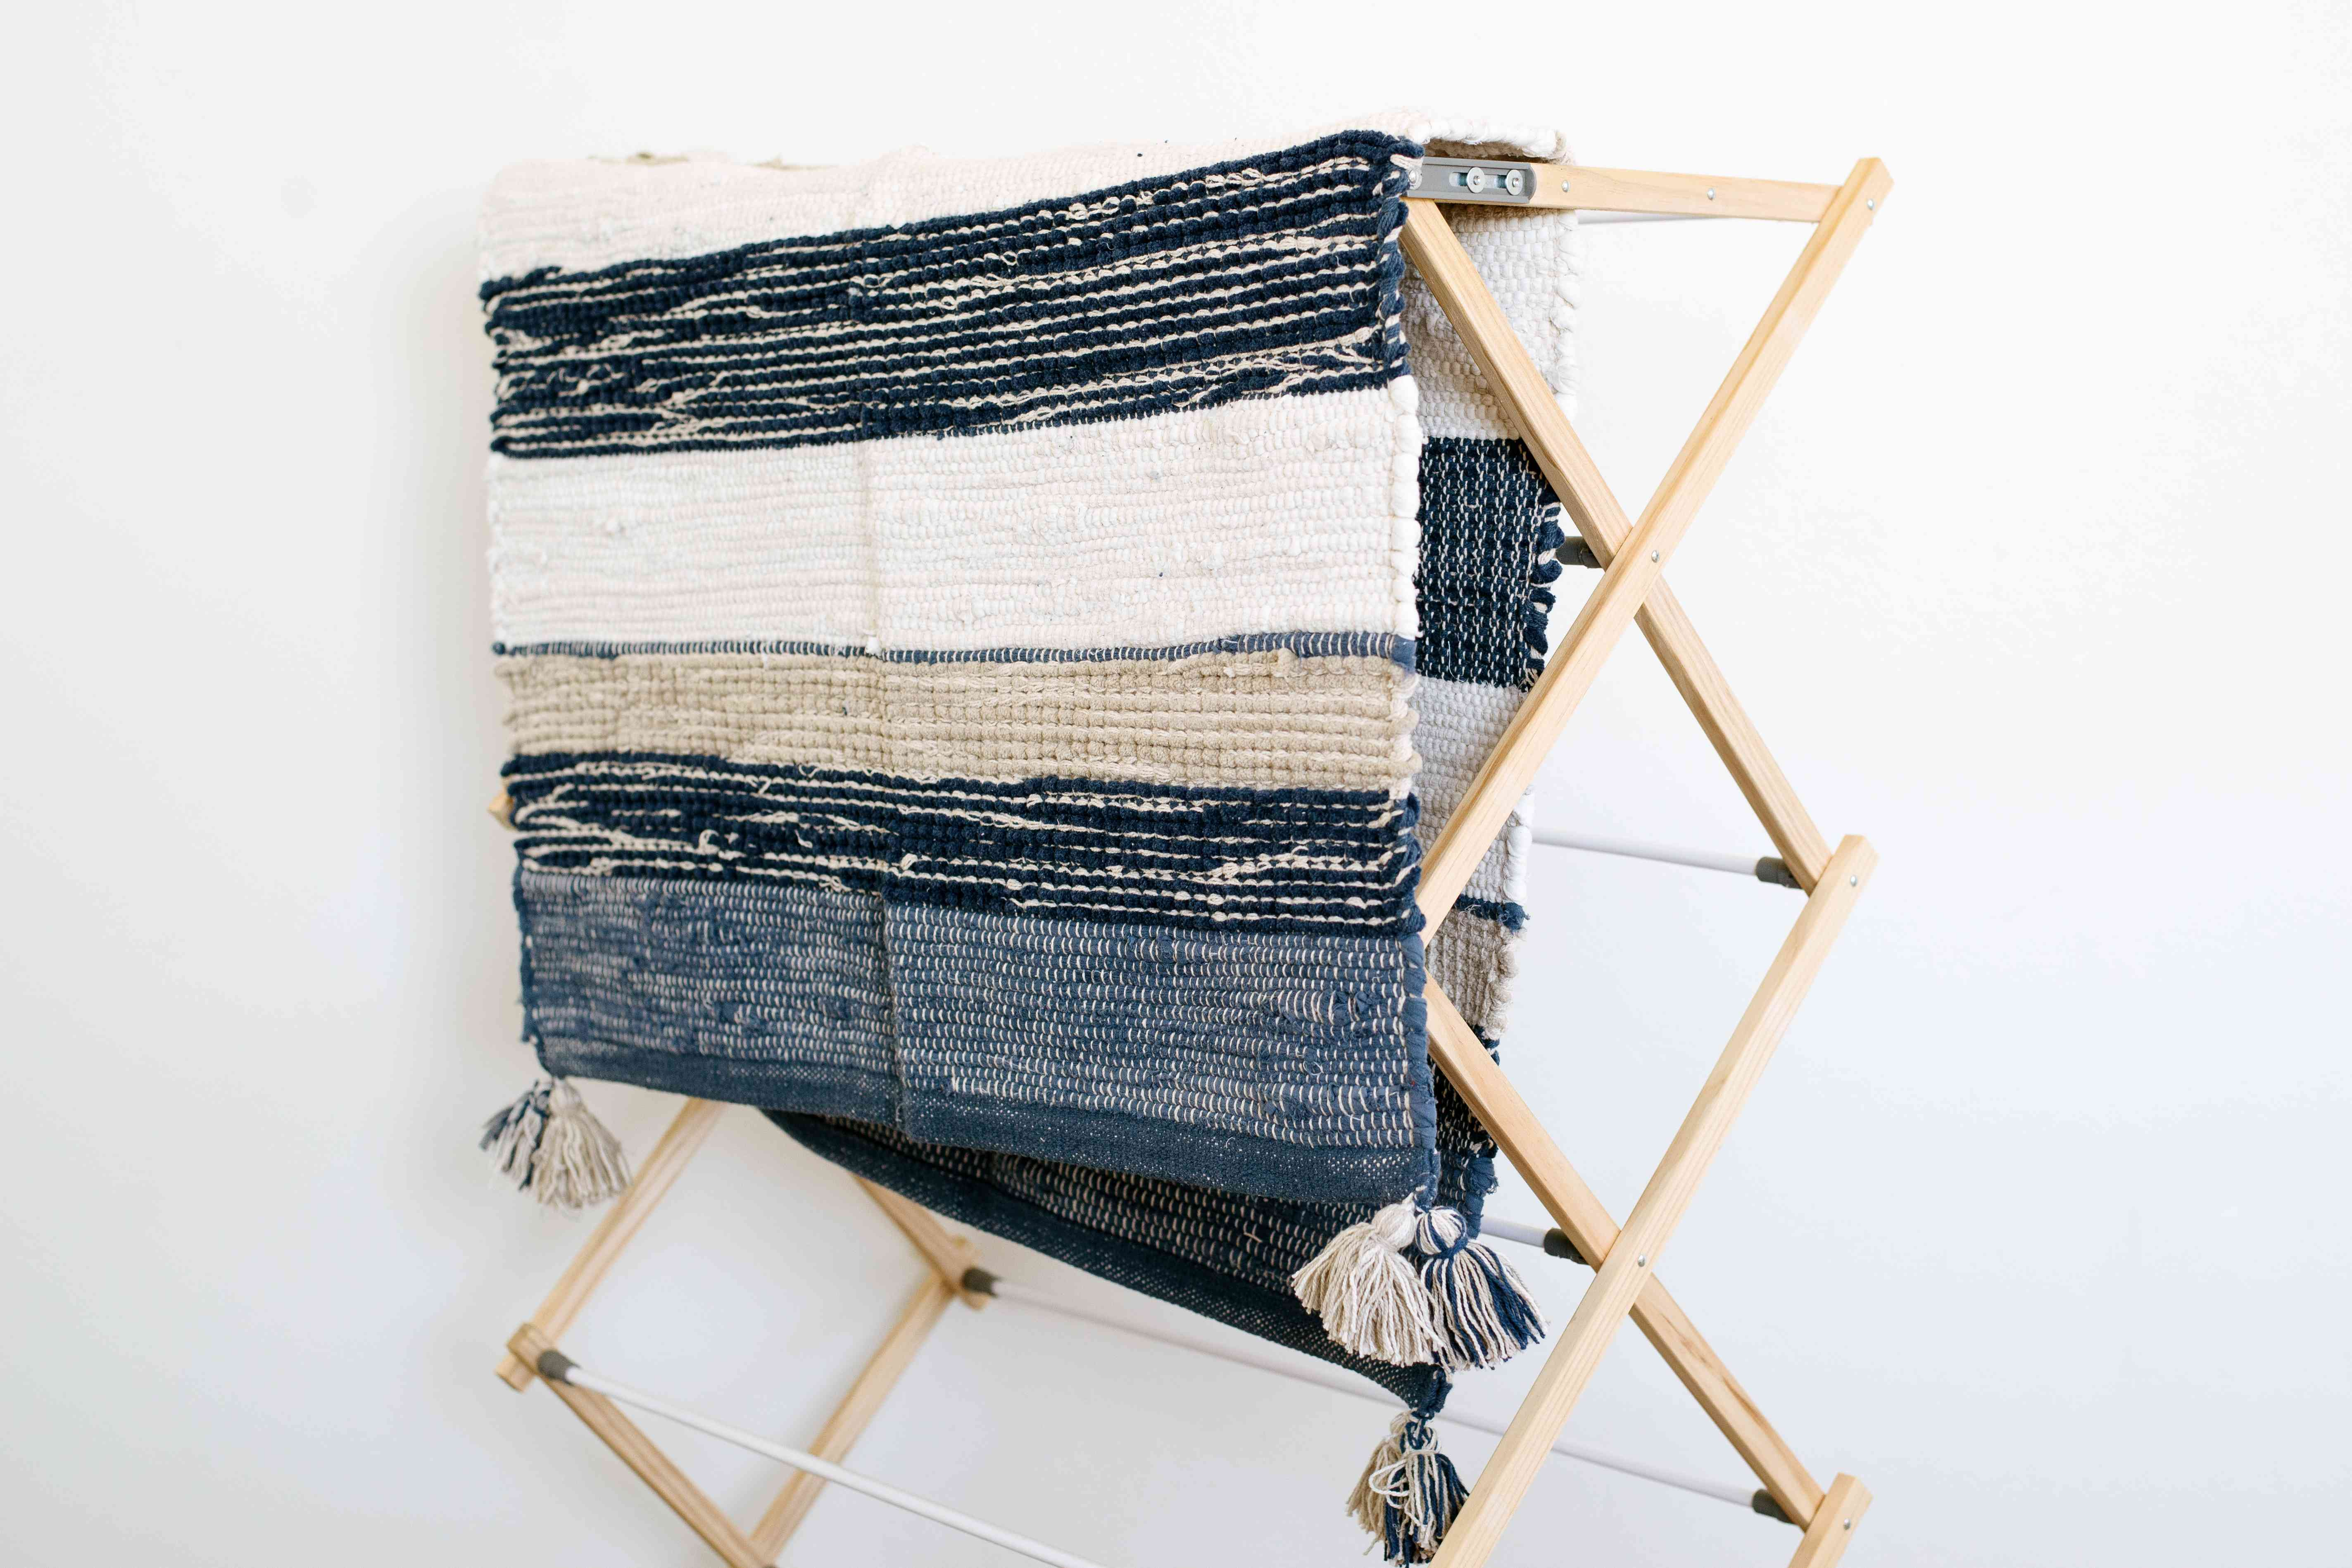 Throw rug on wooden drying rack